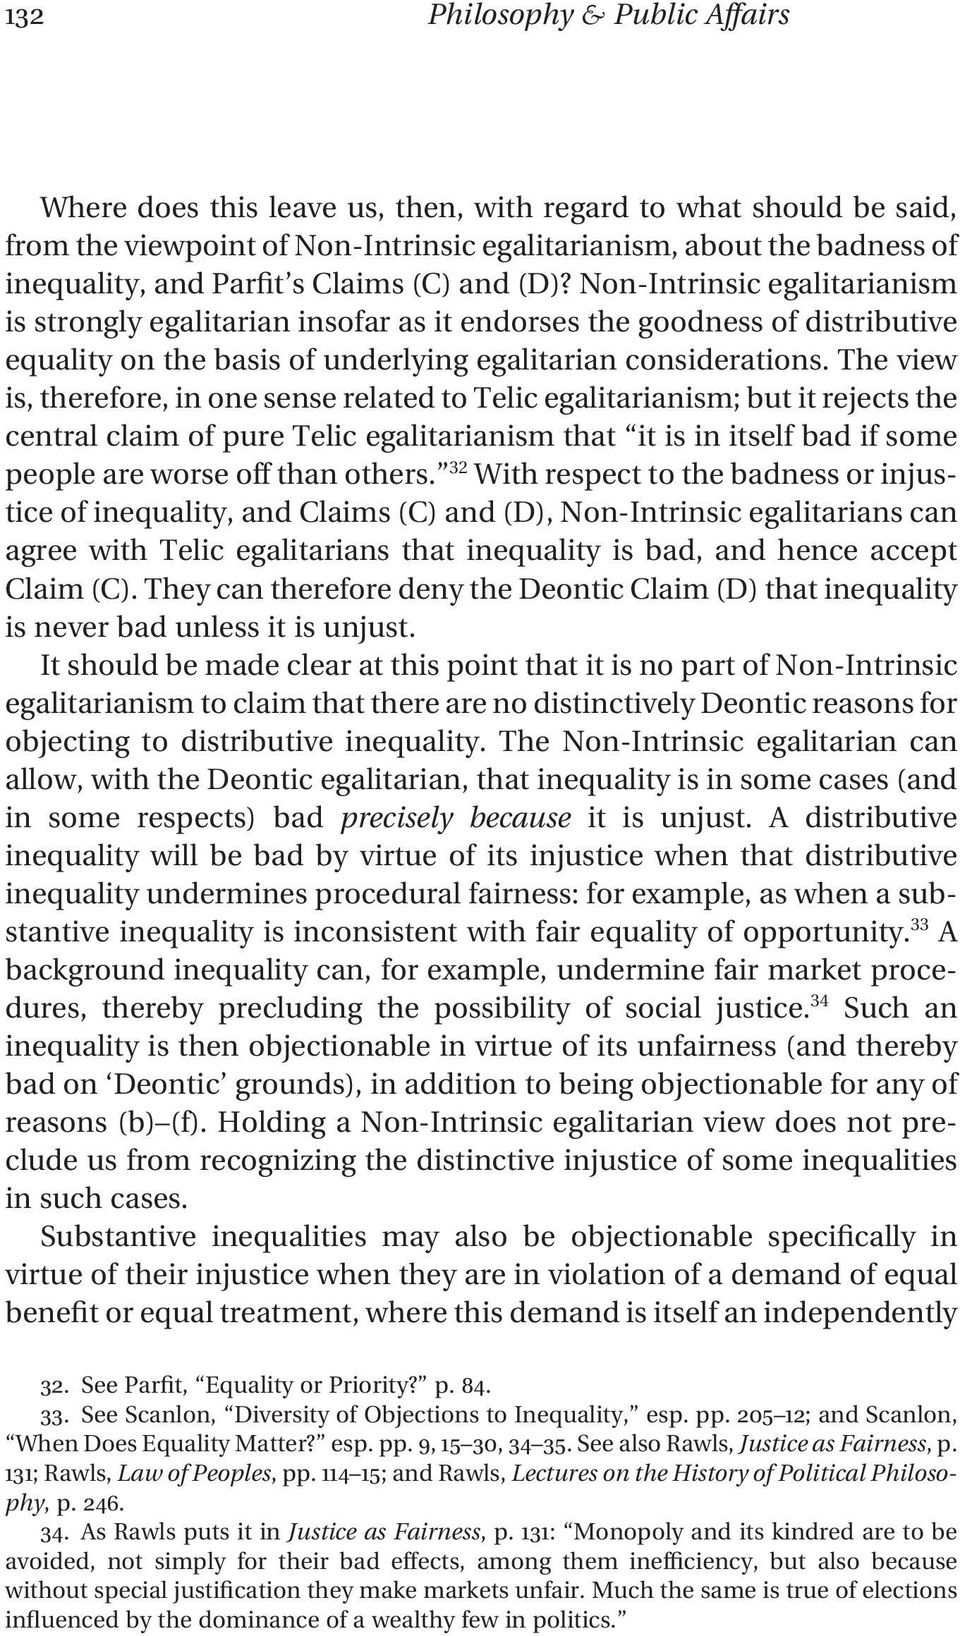 The view is, therefore, in one sense related to Telic egalitarianism; but it rejects the central claim of pure Telic egalitarianism that it is in itself bad if some people are worse off than others.